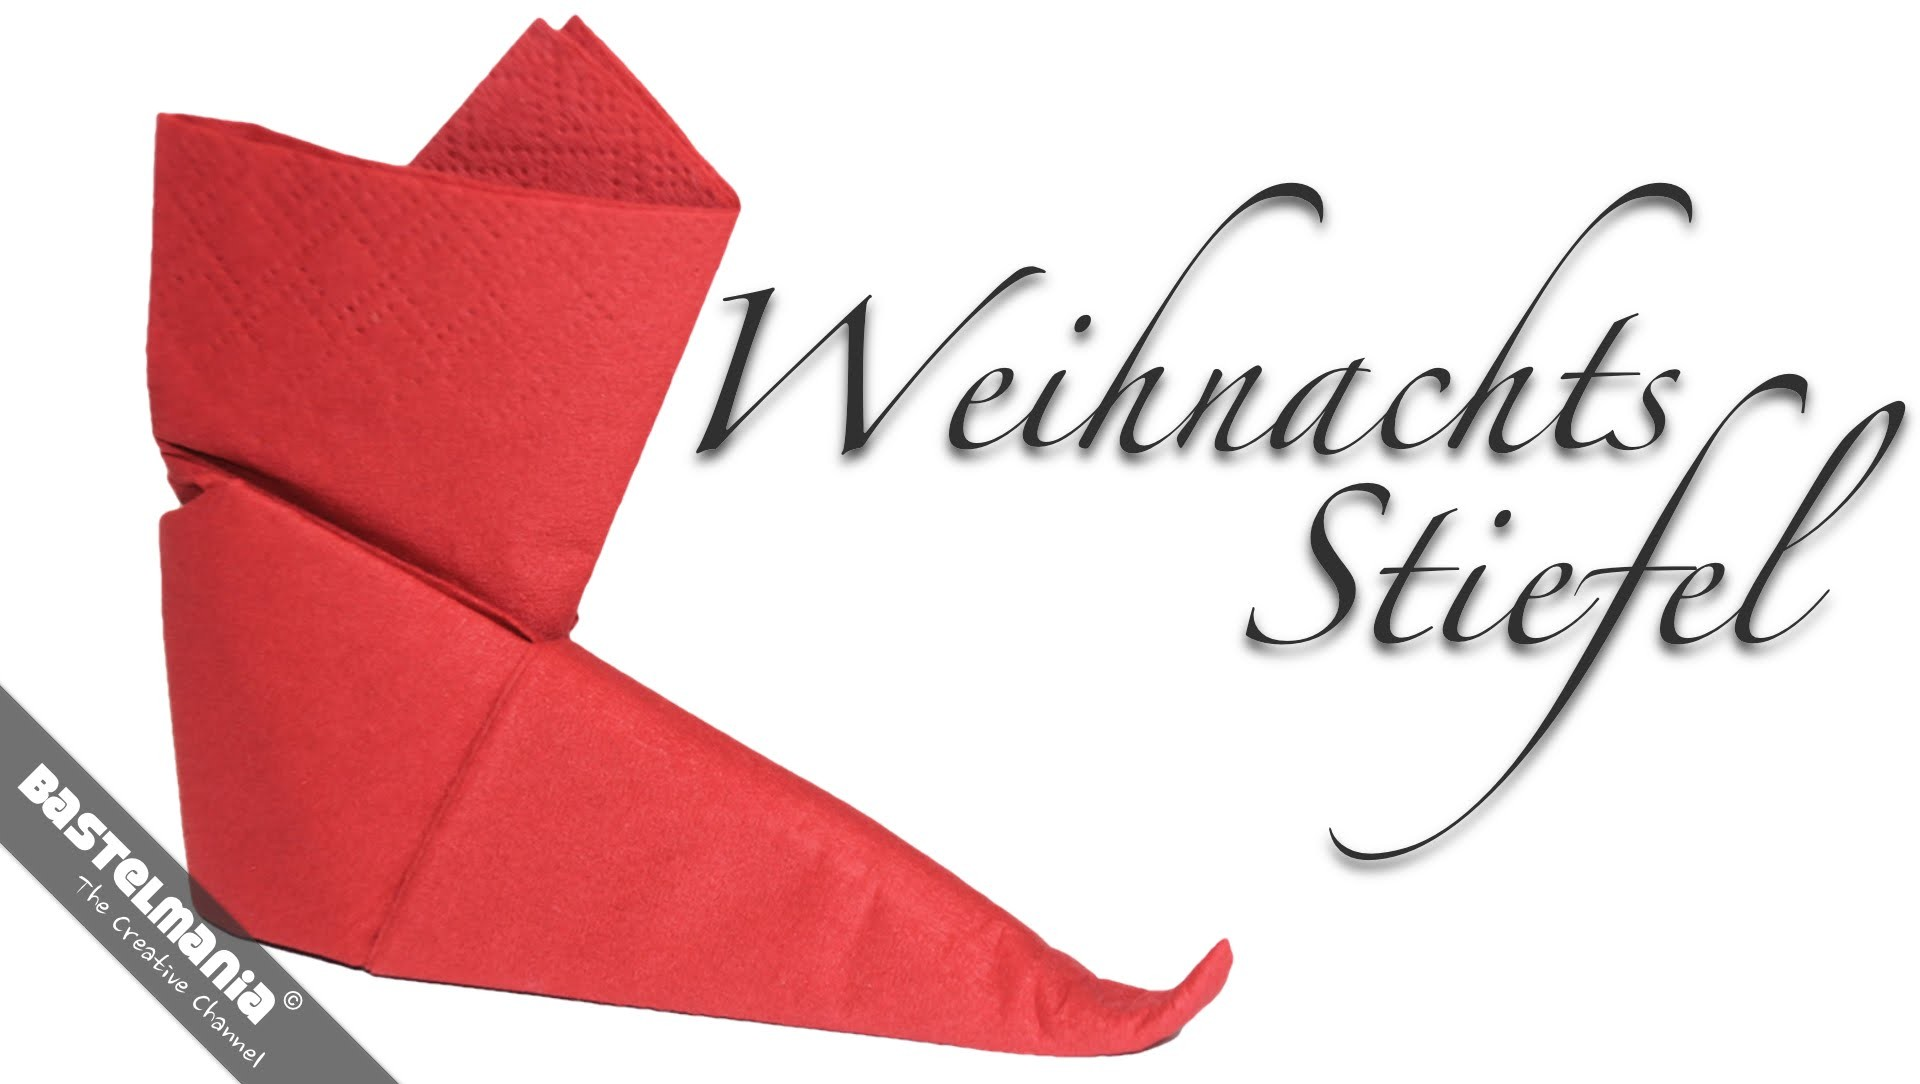 servietten falten anleitung stiefel weihnachten diy napkin folding instruction boots. Black Bedroom Furniture Sets. Home Design Ideas